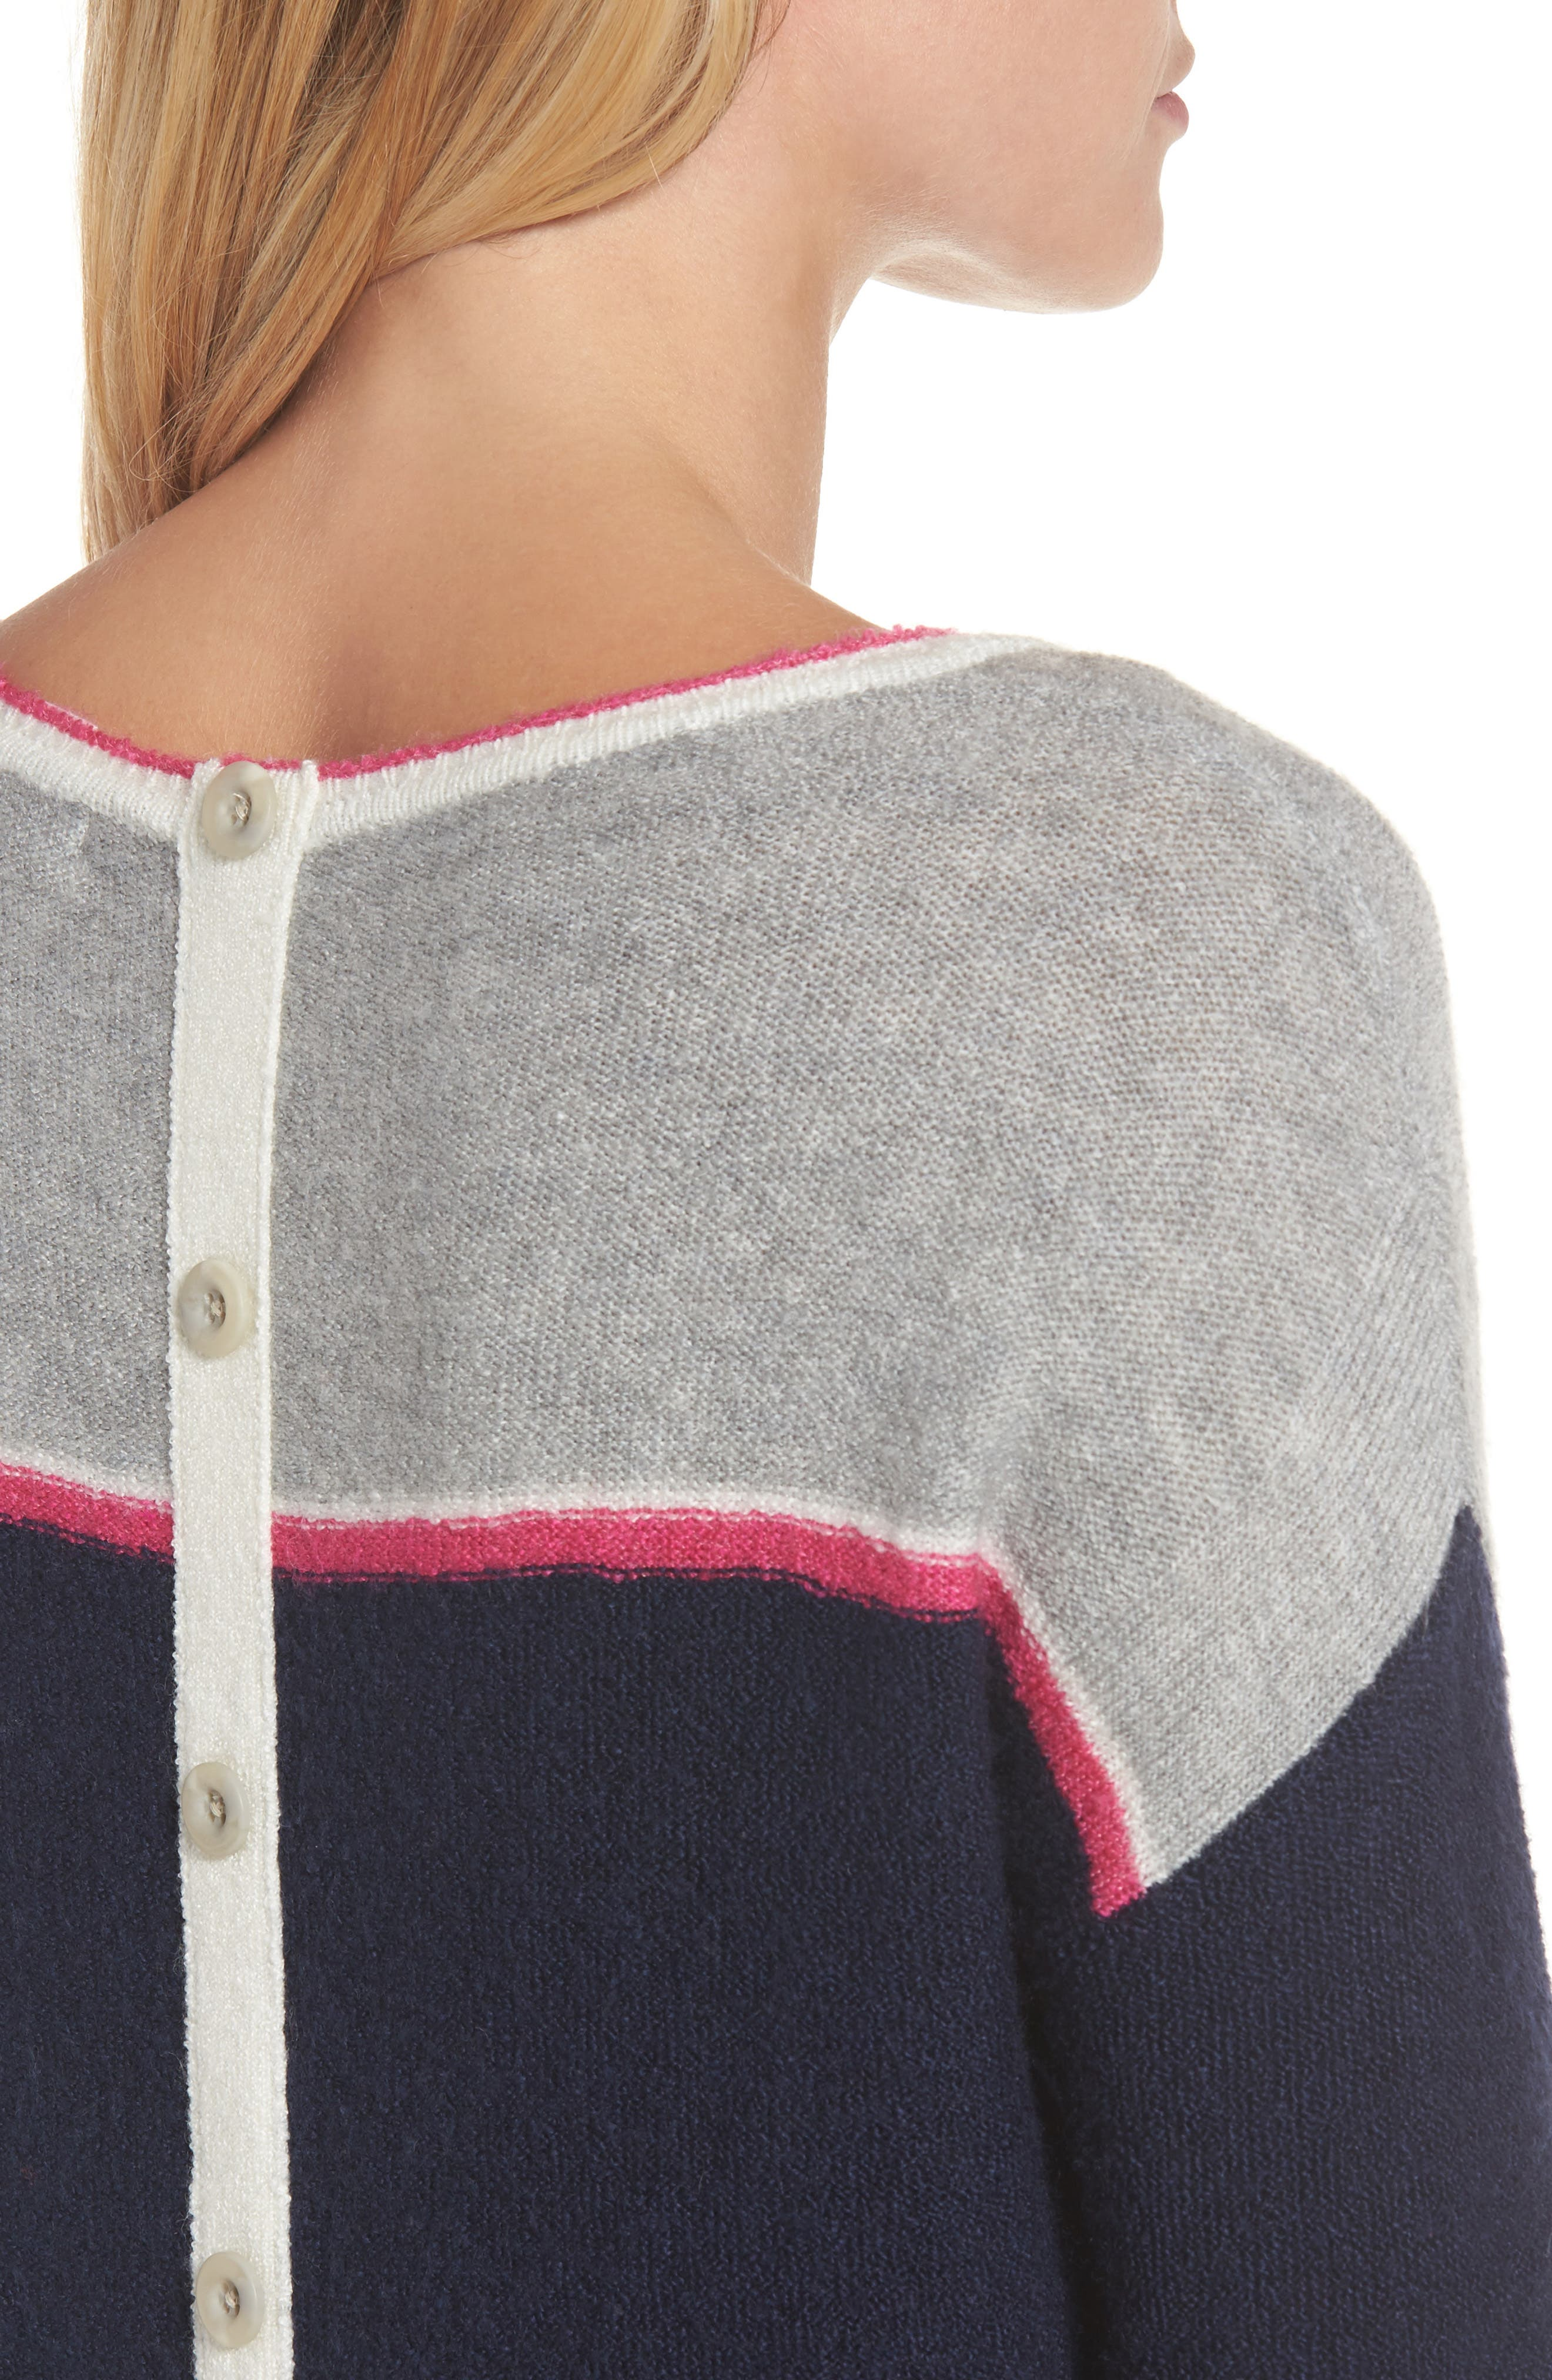 Button Back Sweater,                             Alternate thumbnail 4, color,                             410